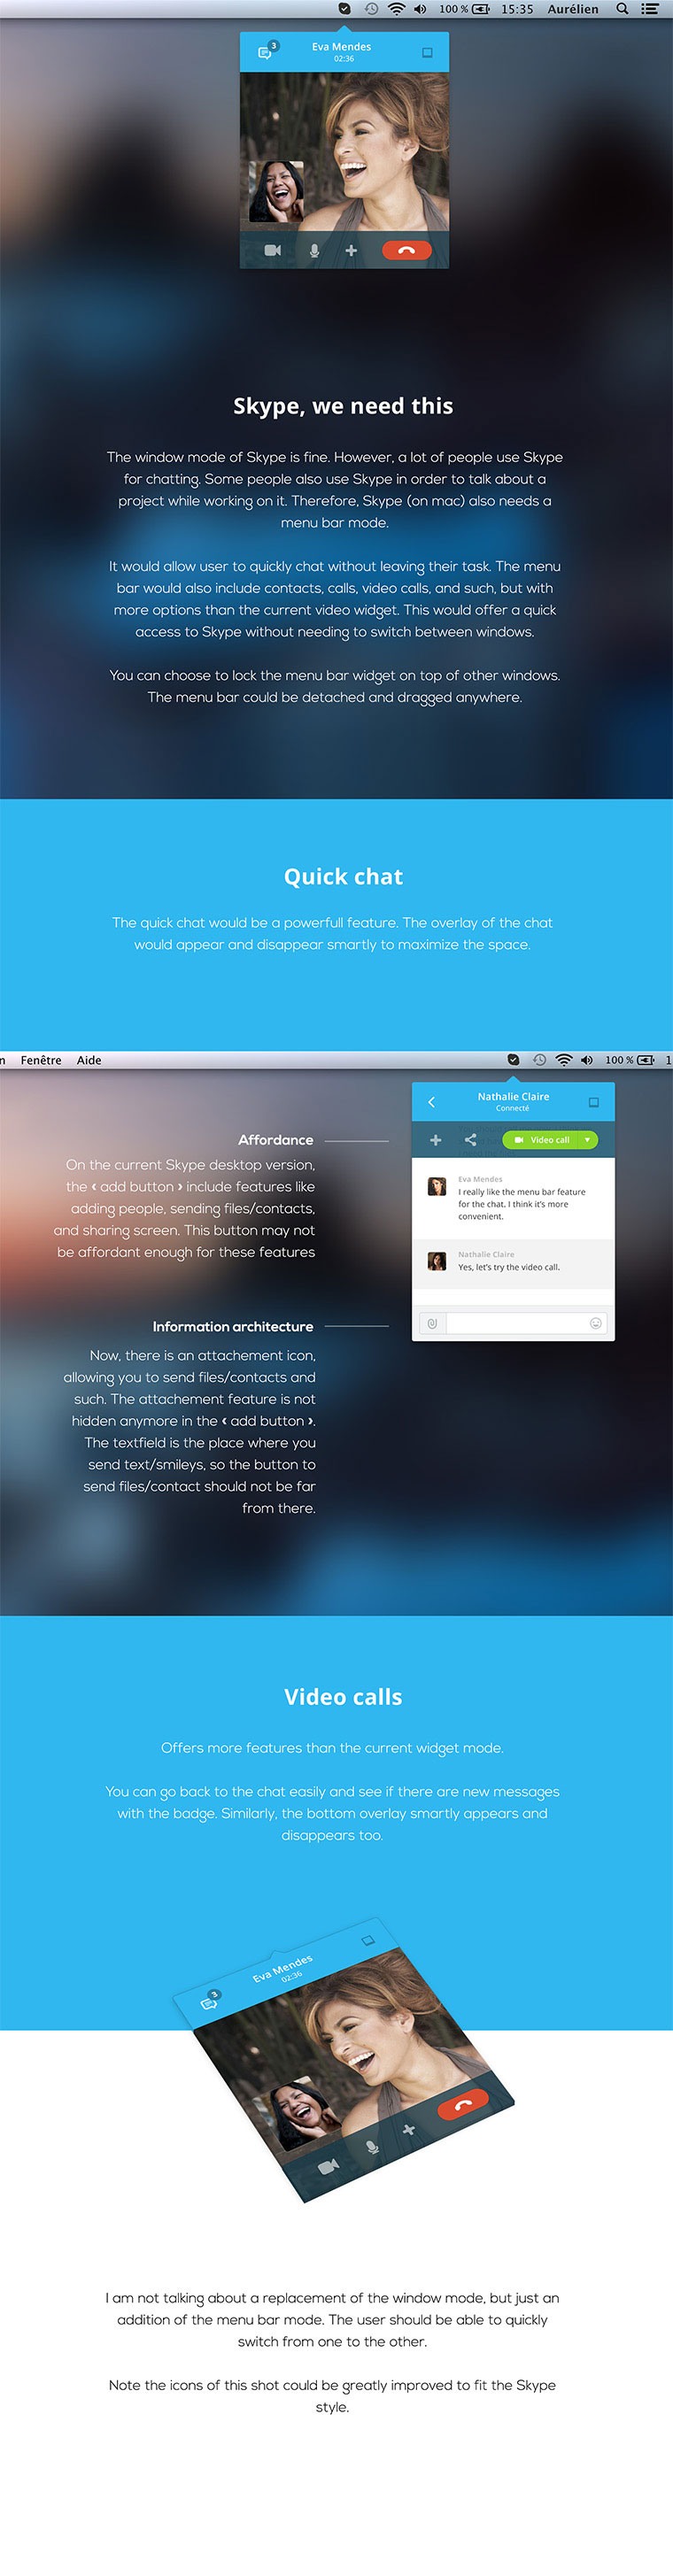 skype-menu-bar-concept